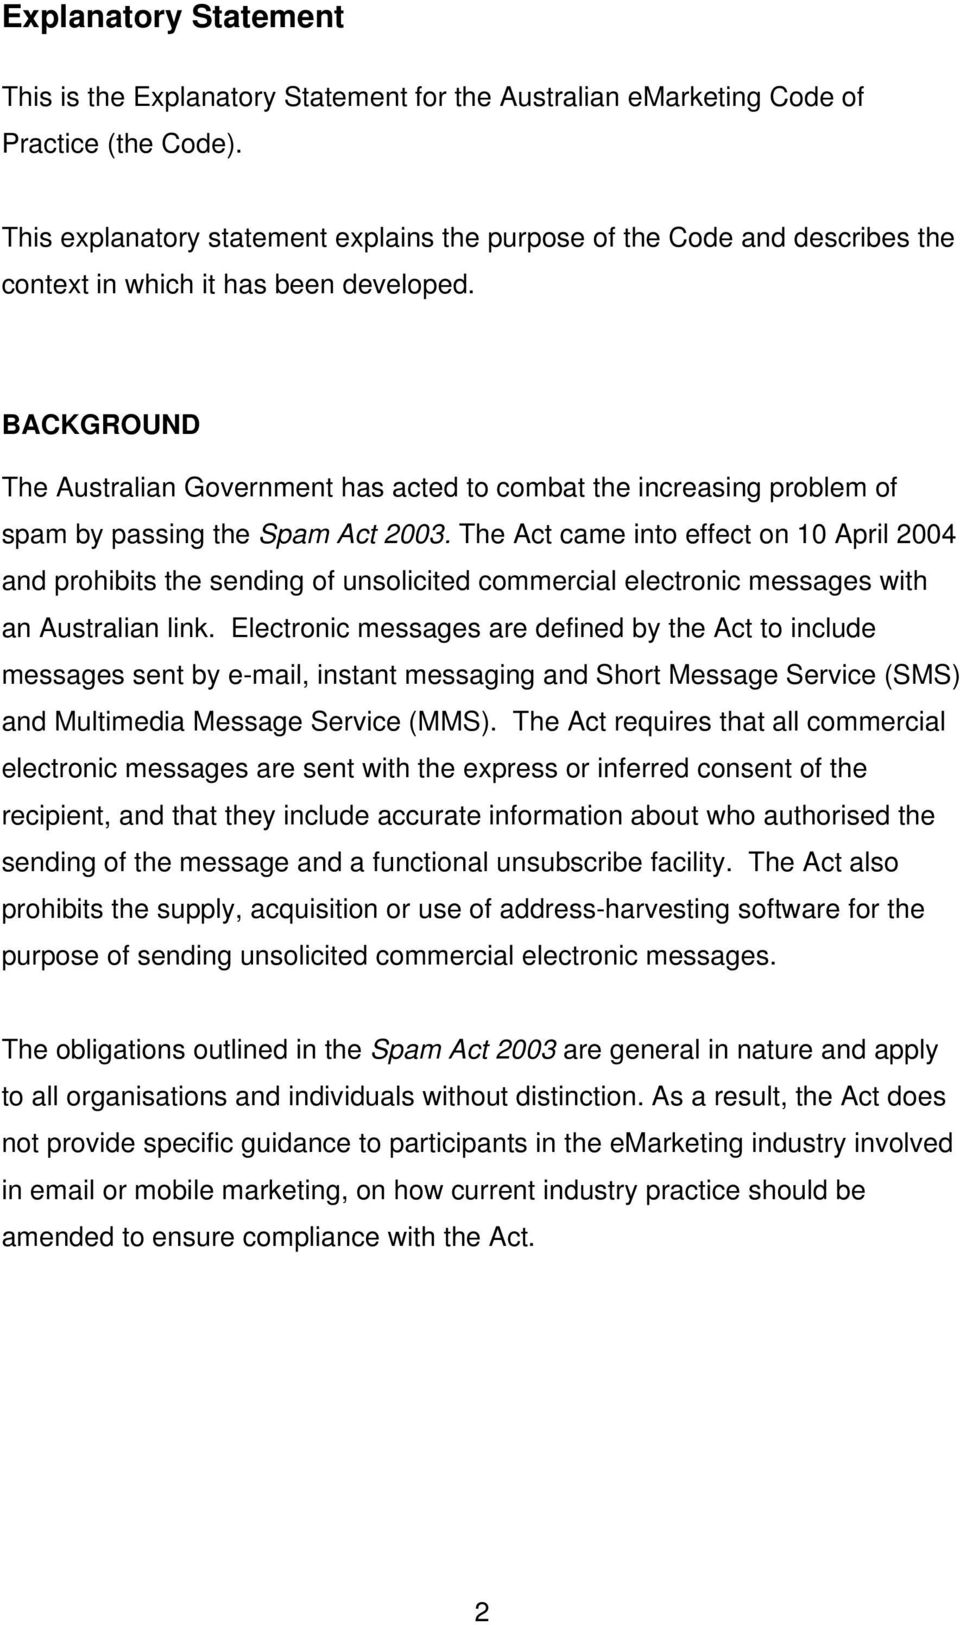 BACKGROUND The Australian Government has acted to combat the increasing problem of spam by passing the Spam Act 2003.